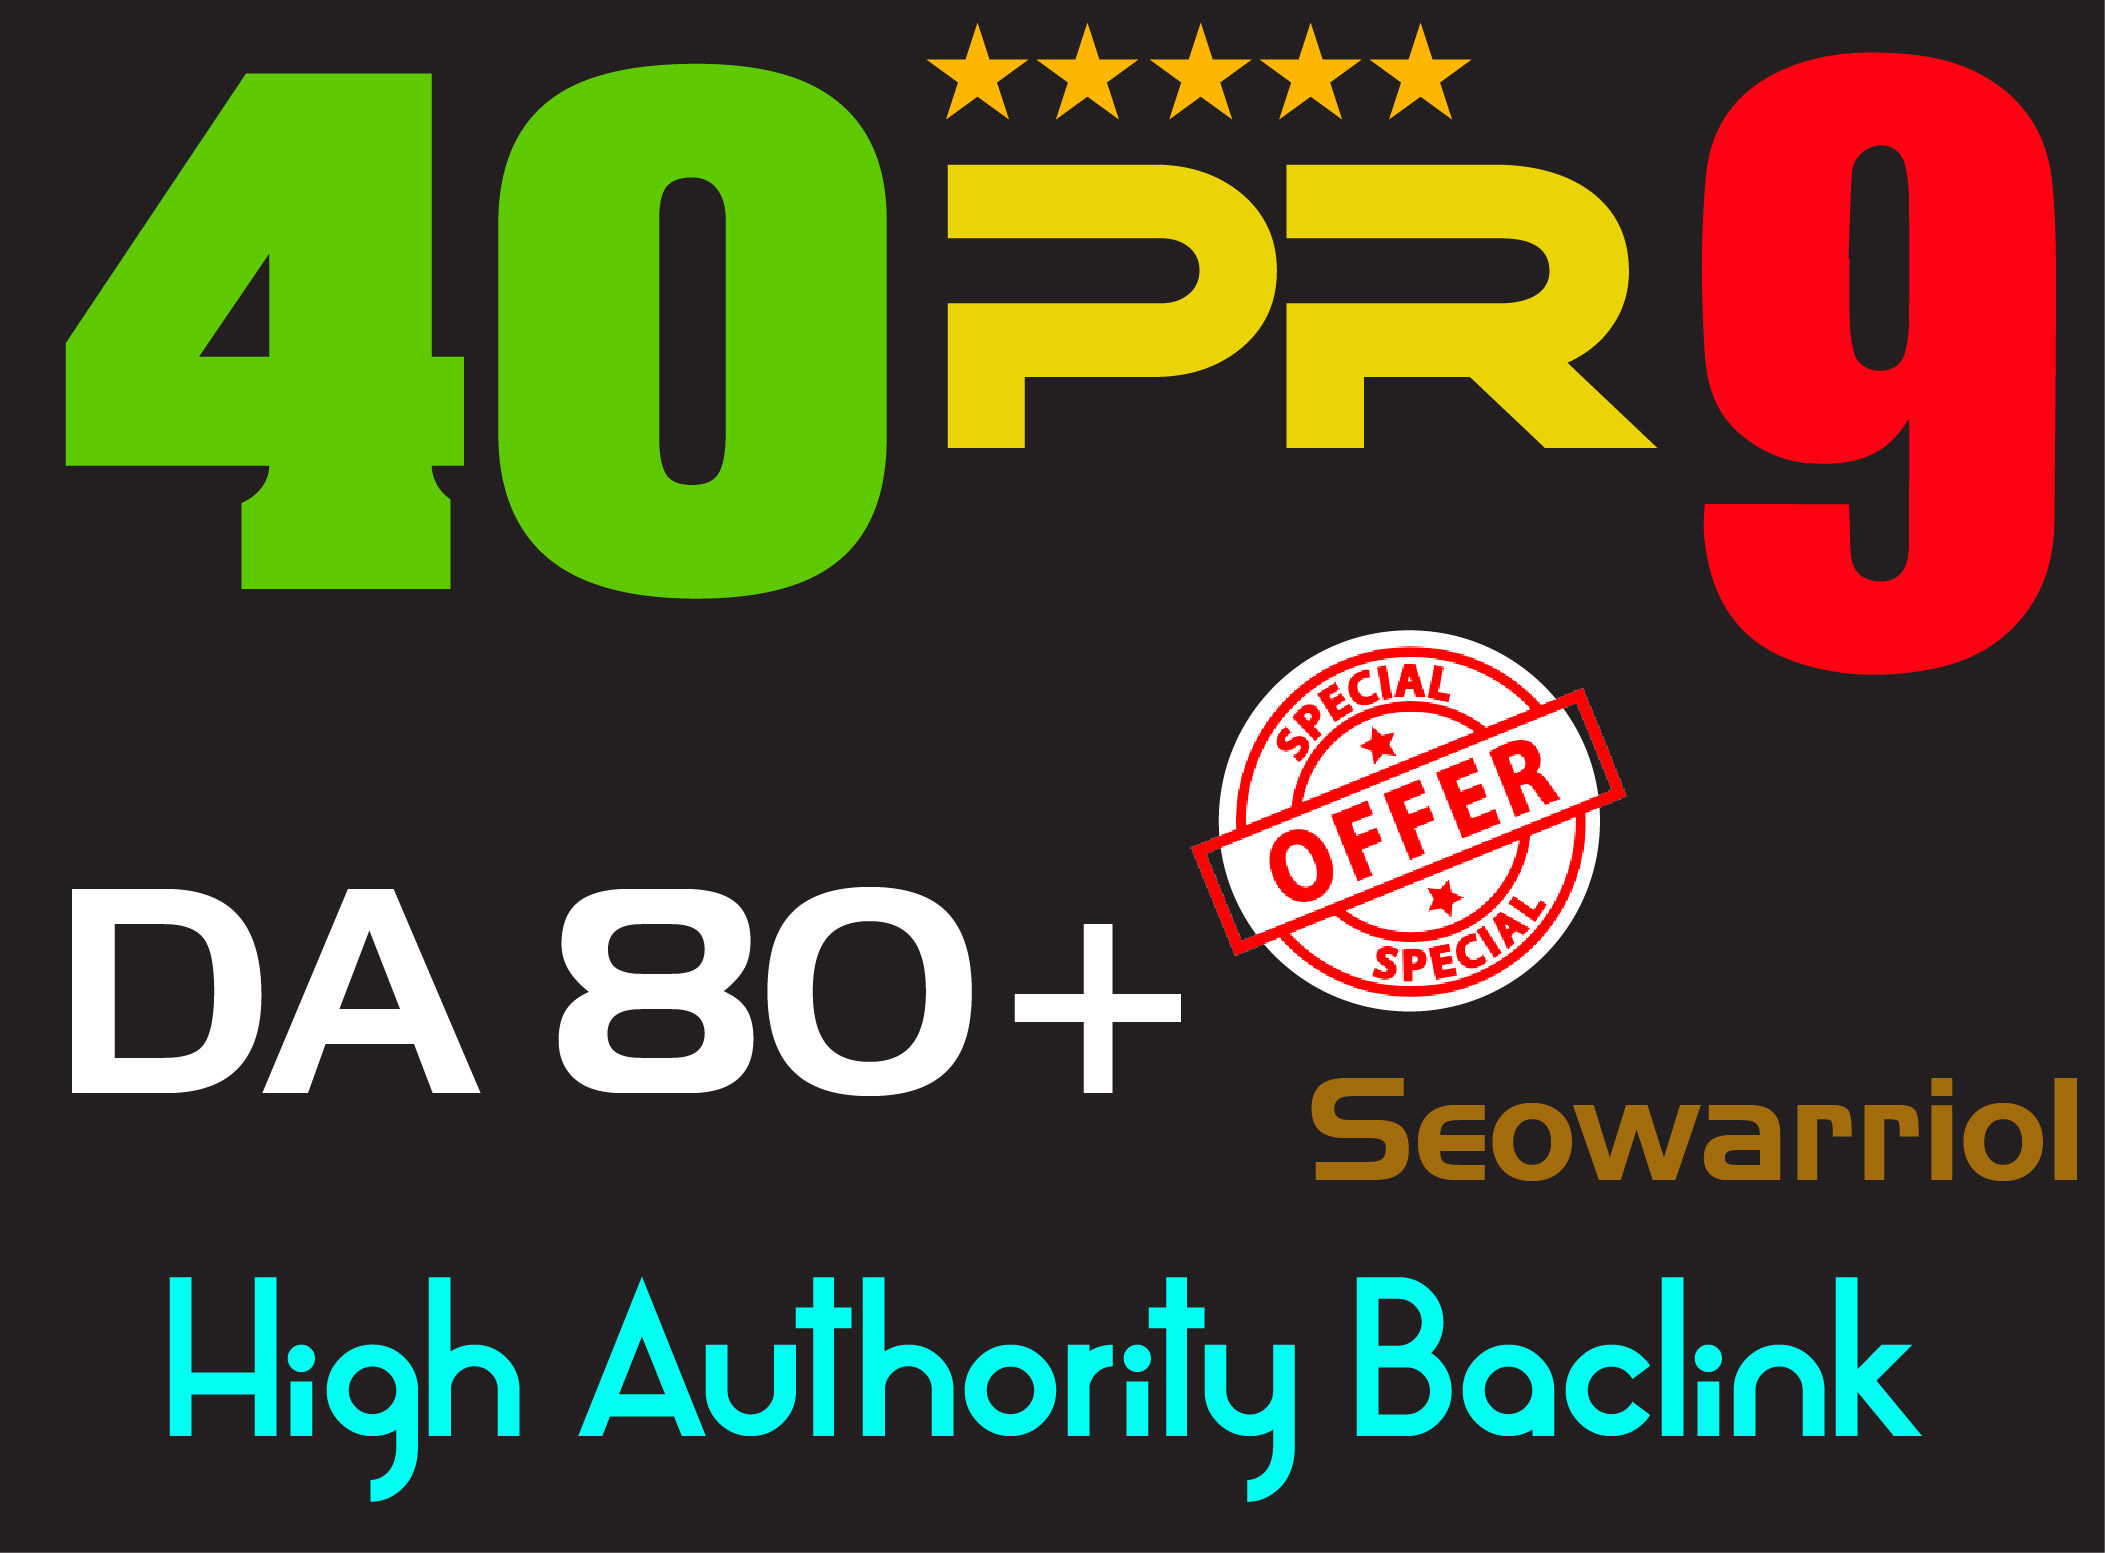 Elevate your seo Google Rankings with 40 PR9 DA 80+hi...